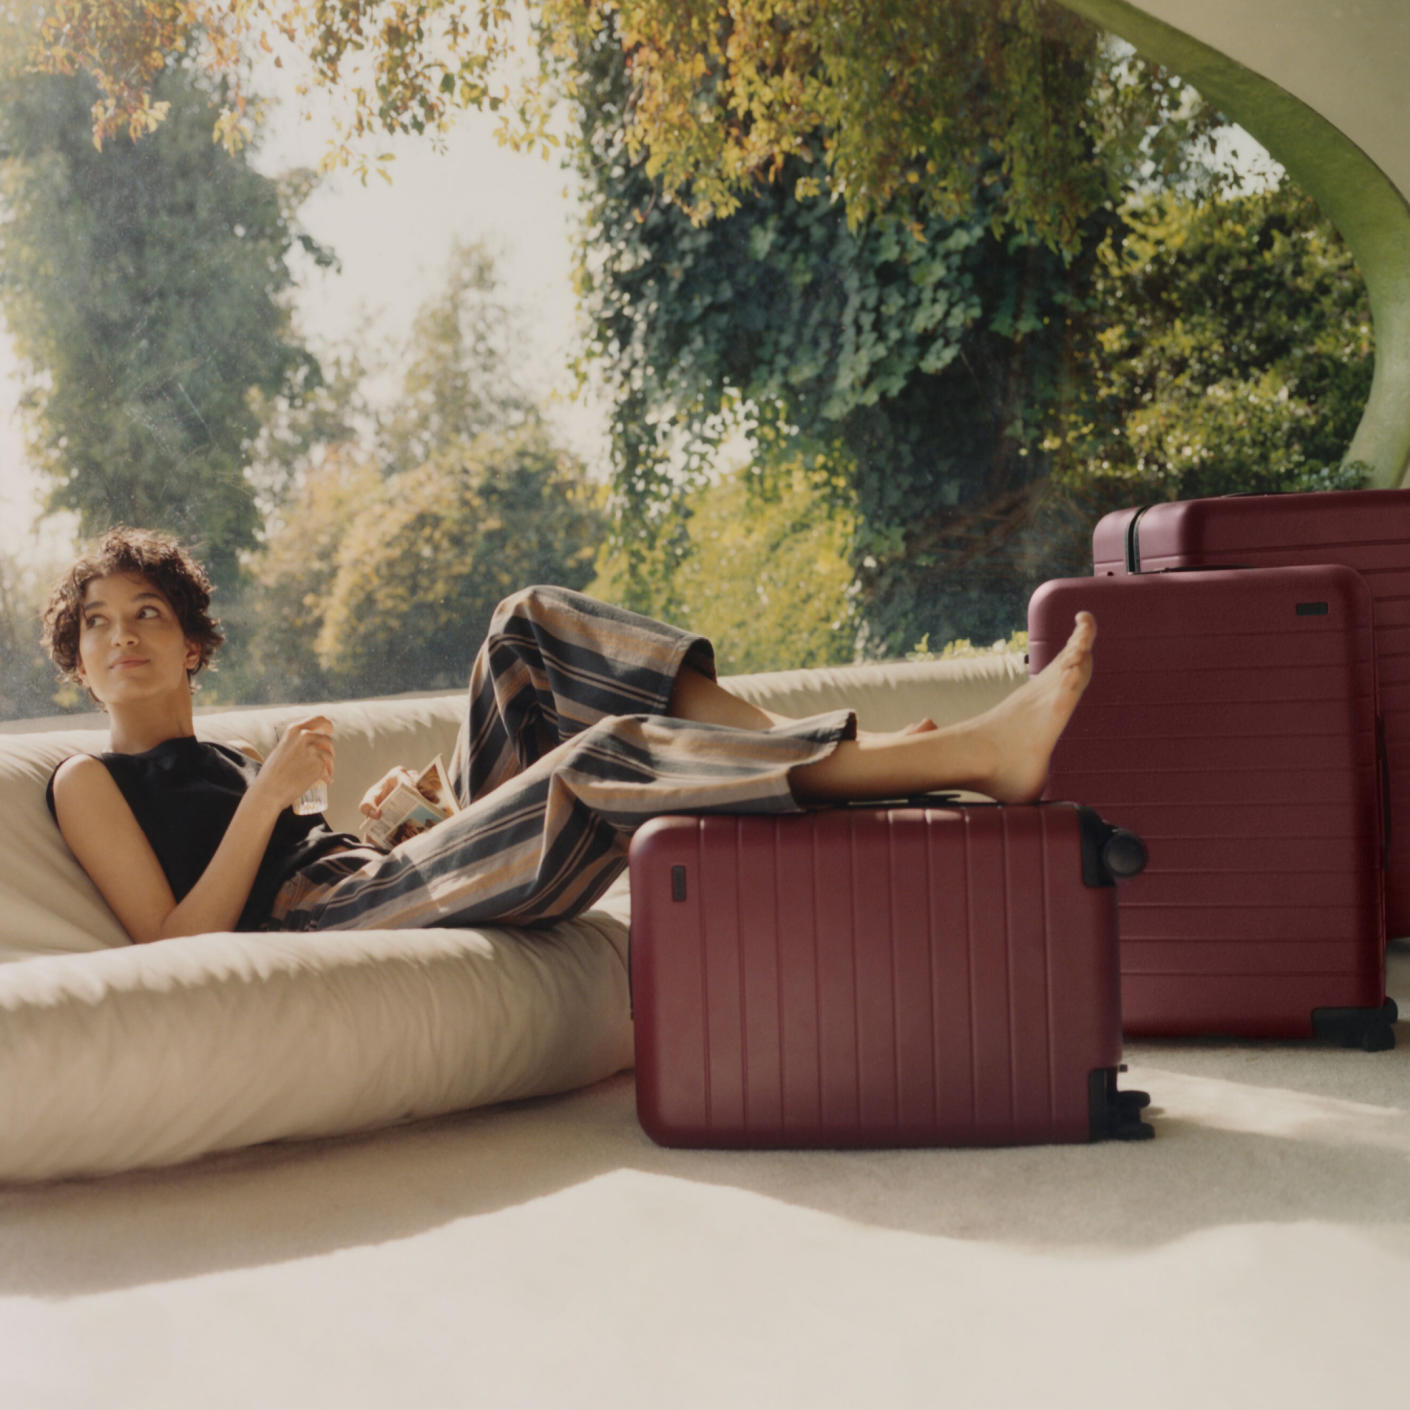 A woman lounging on a sofa ready to travel with her carry-on and checked Away luggage in maroon, at her feet.